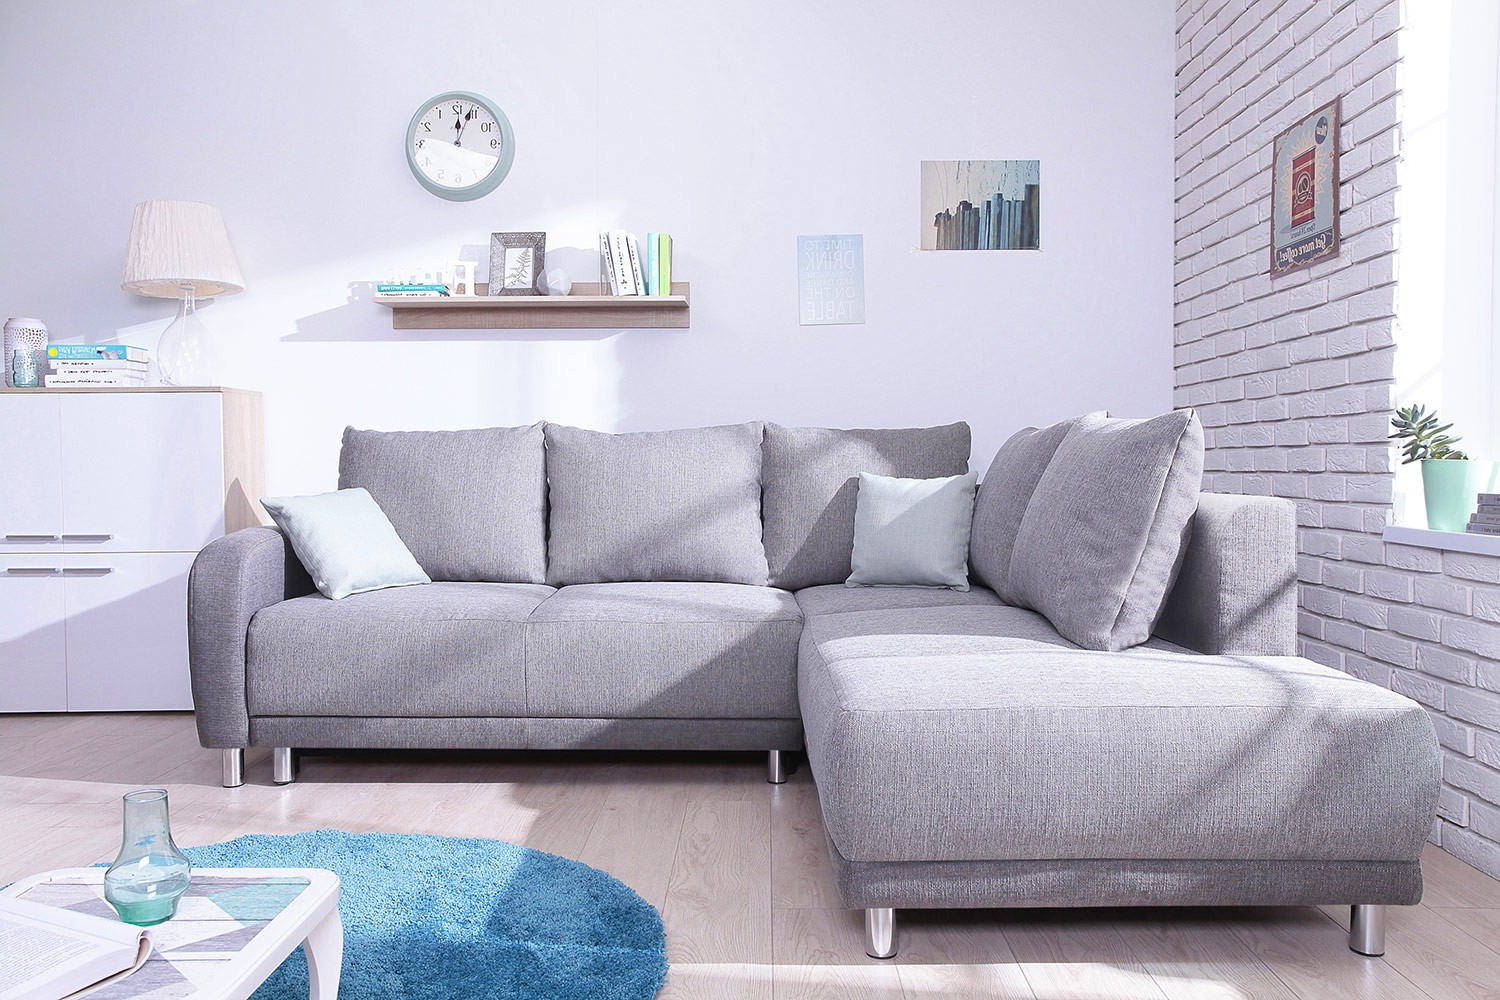 Canape Gris Angle Minty Grand Angle Droit Canapé Convertible Scandinave Bobochic Bicolore Gris Clair